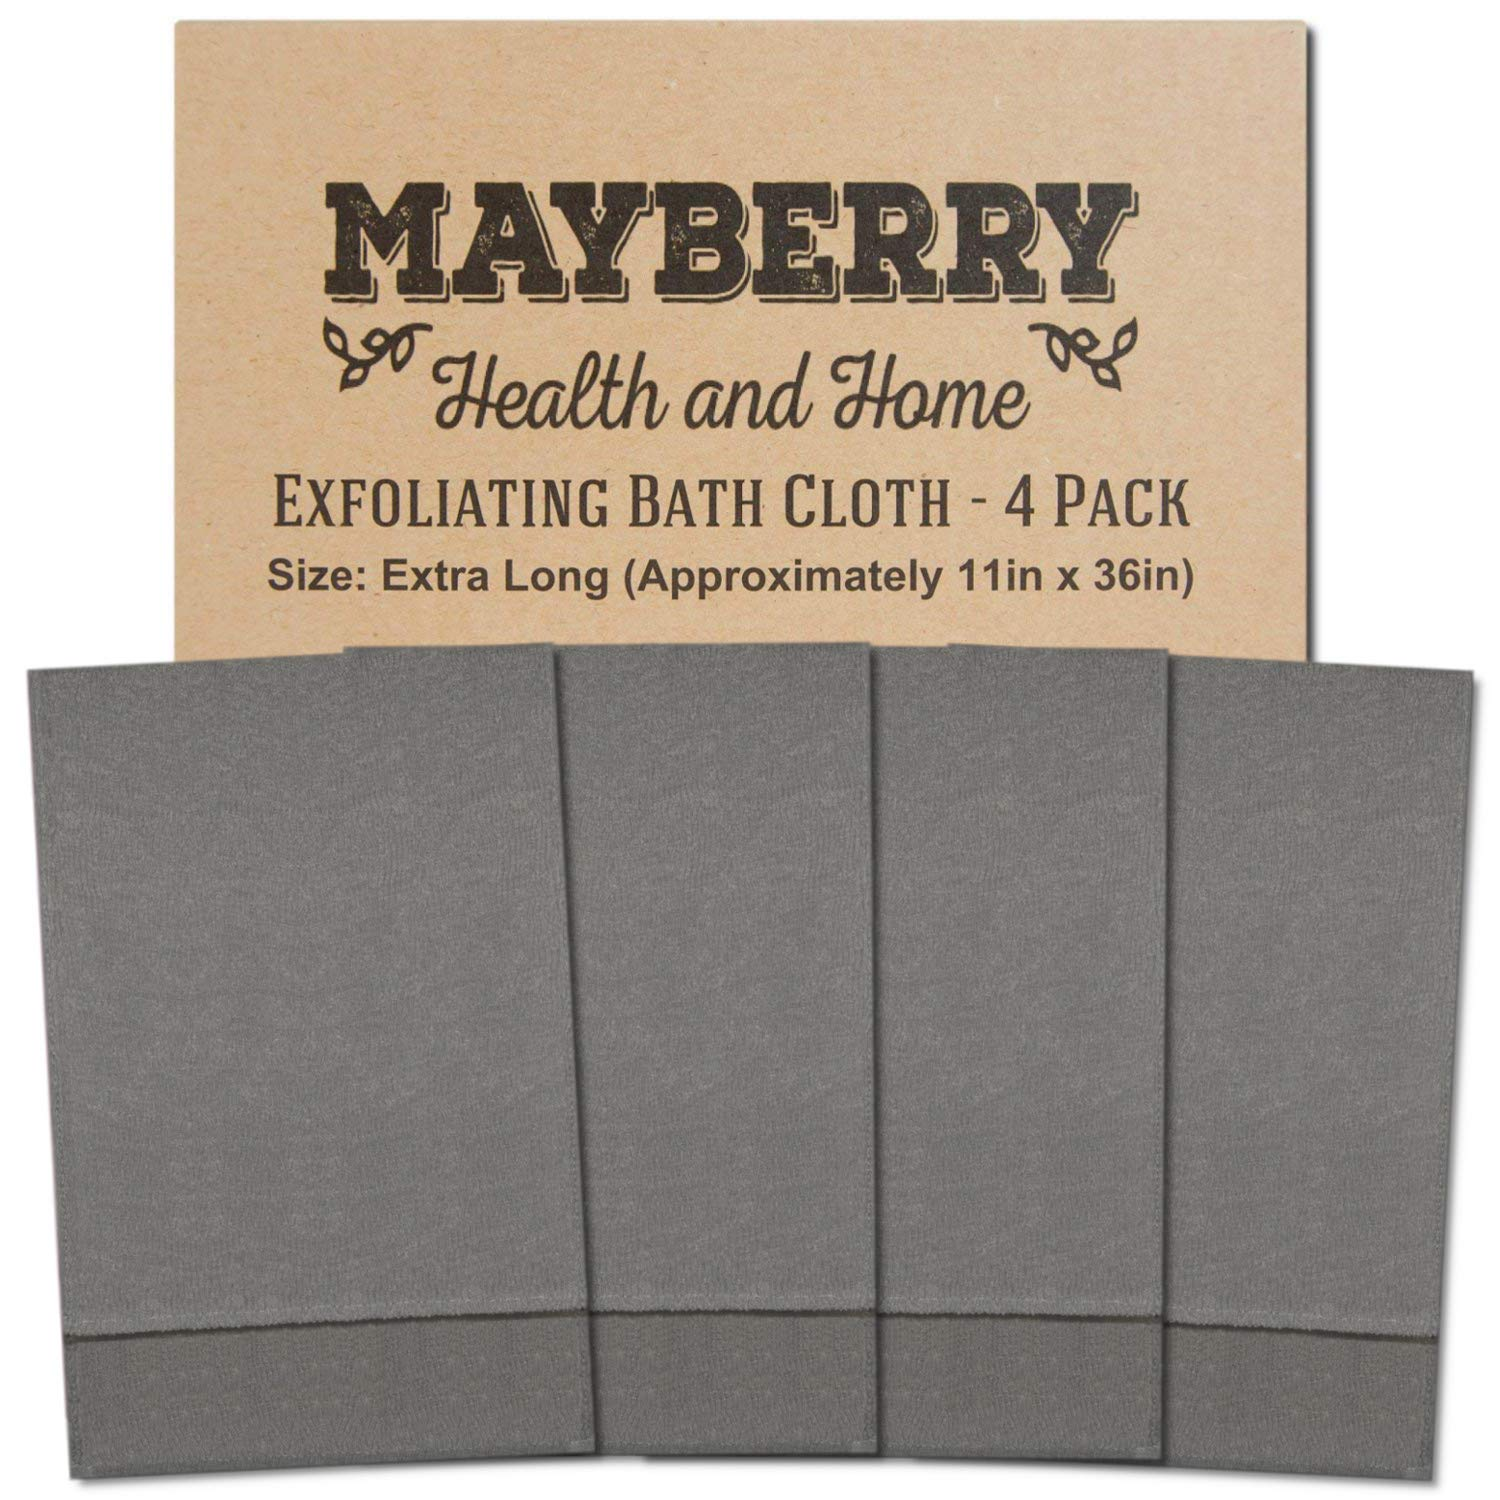 Extra Long (36 Inches) Exfoliating Bath Cloth/Towel (4 Pack) Nylon Bath Cloth/Towel, Stitching on All Sides for Added Durability (Gray)